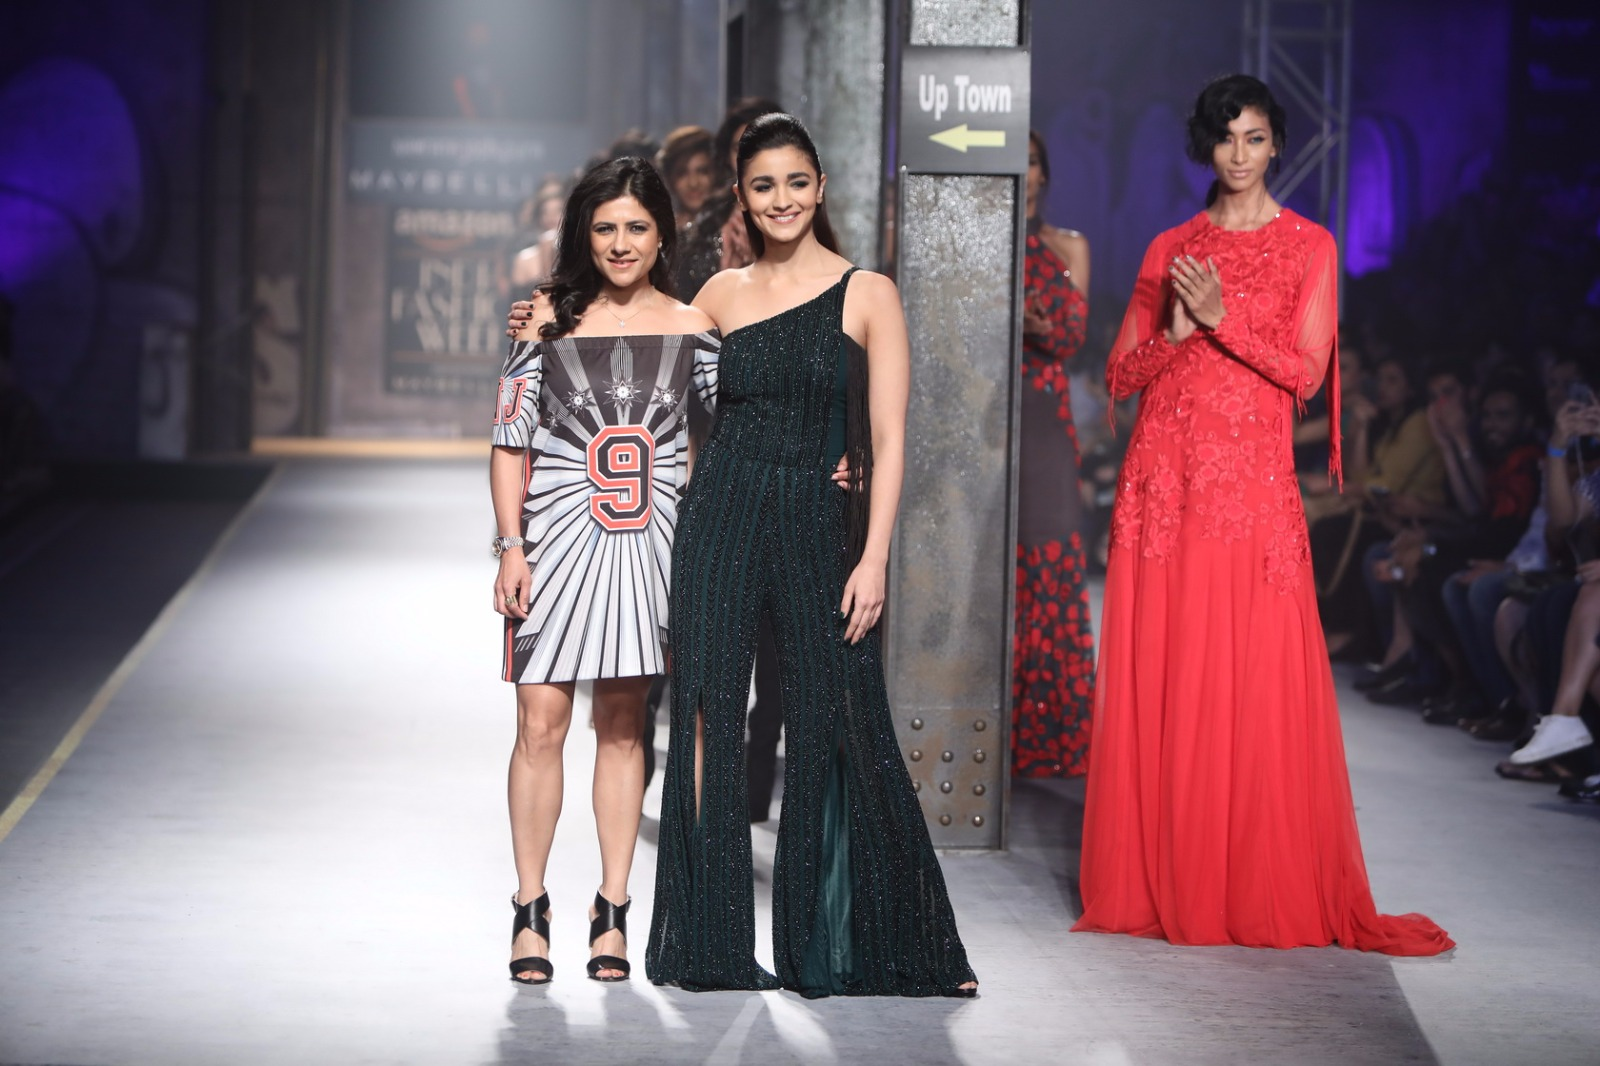 http://www.talksassy.com/wp-content/uploads/2017/03/Amazon-India-Fashion-Week-Autumn-Winter-2017-40.jpg